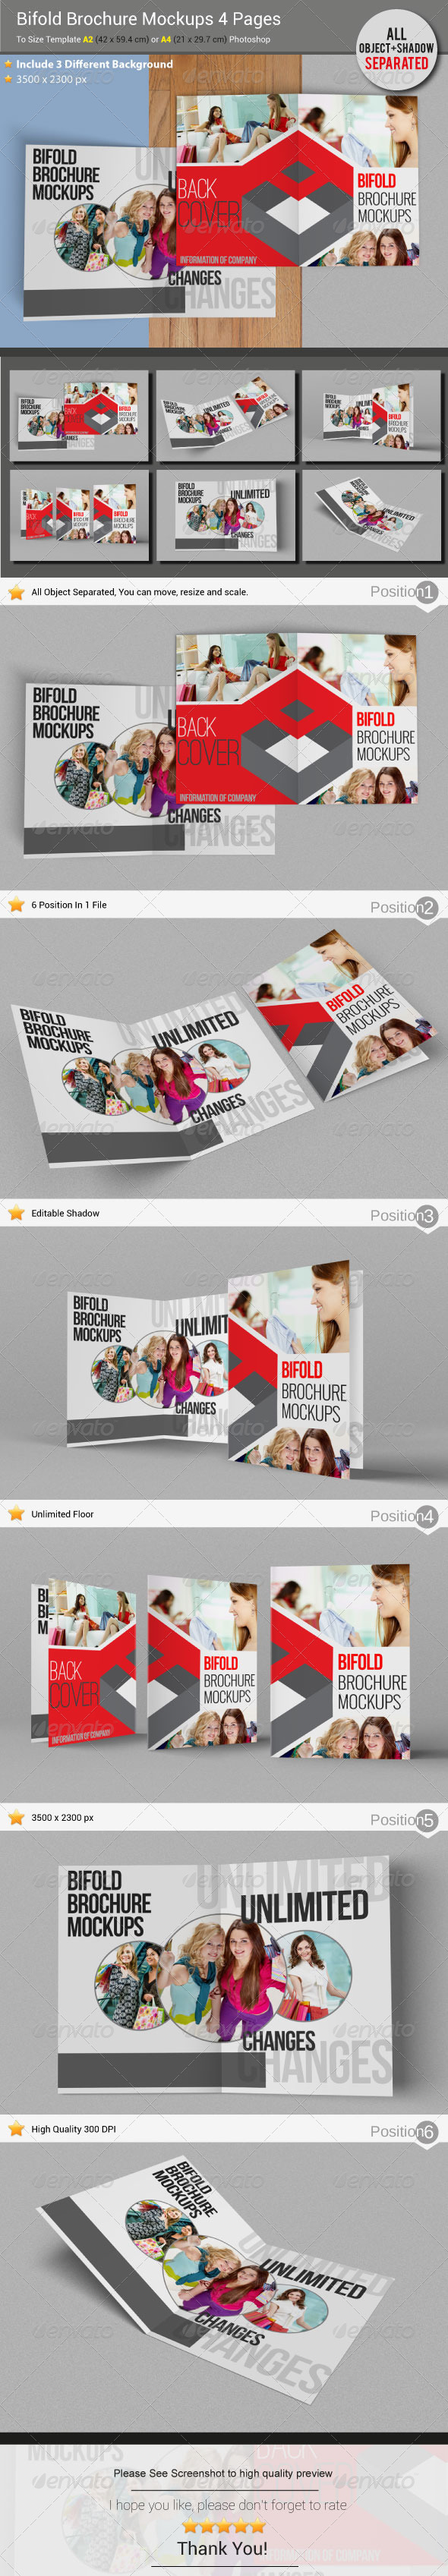 GraphicRiver Brochure Mockups 4 Pages 5619637